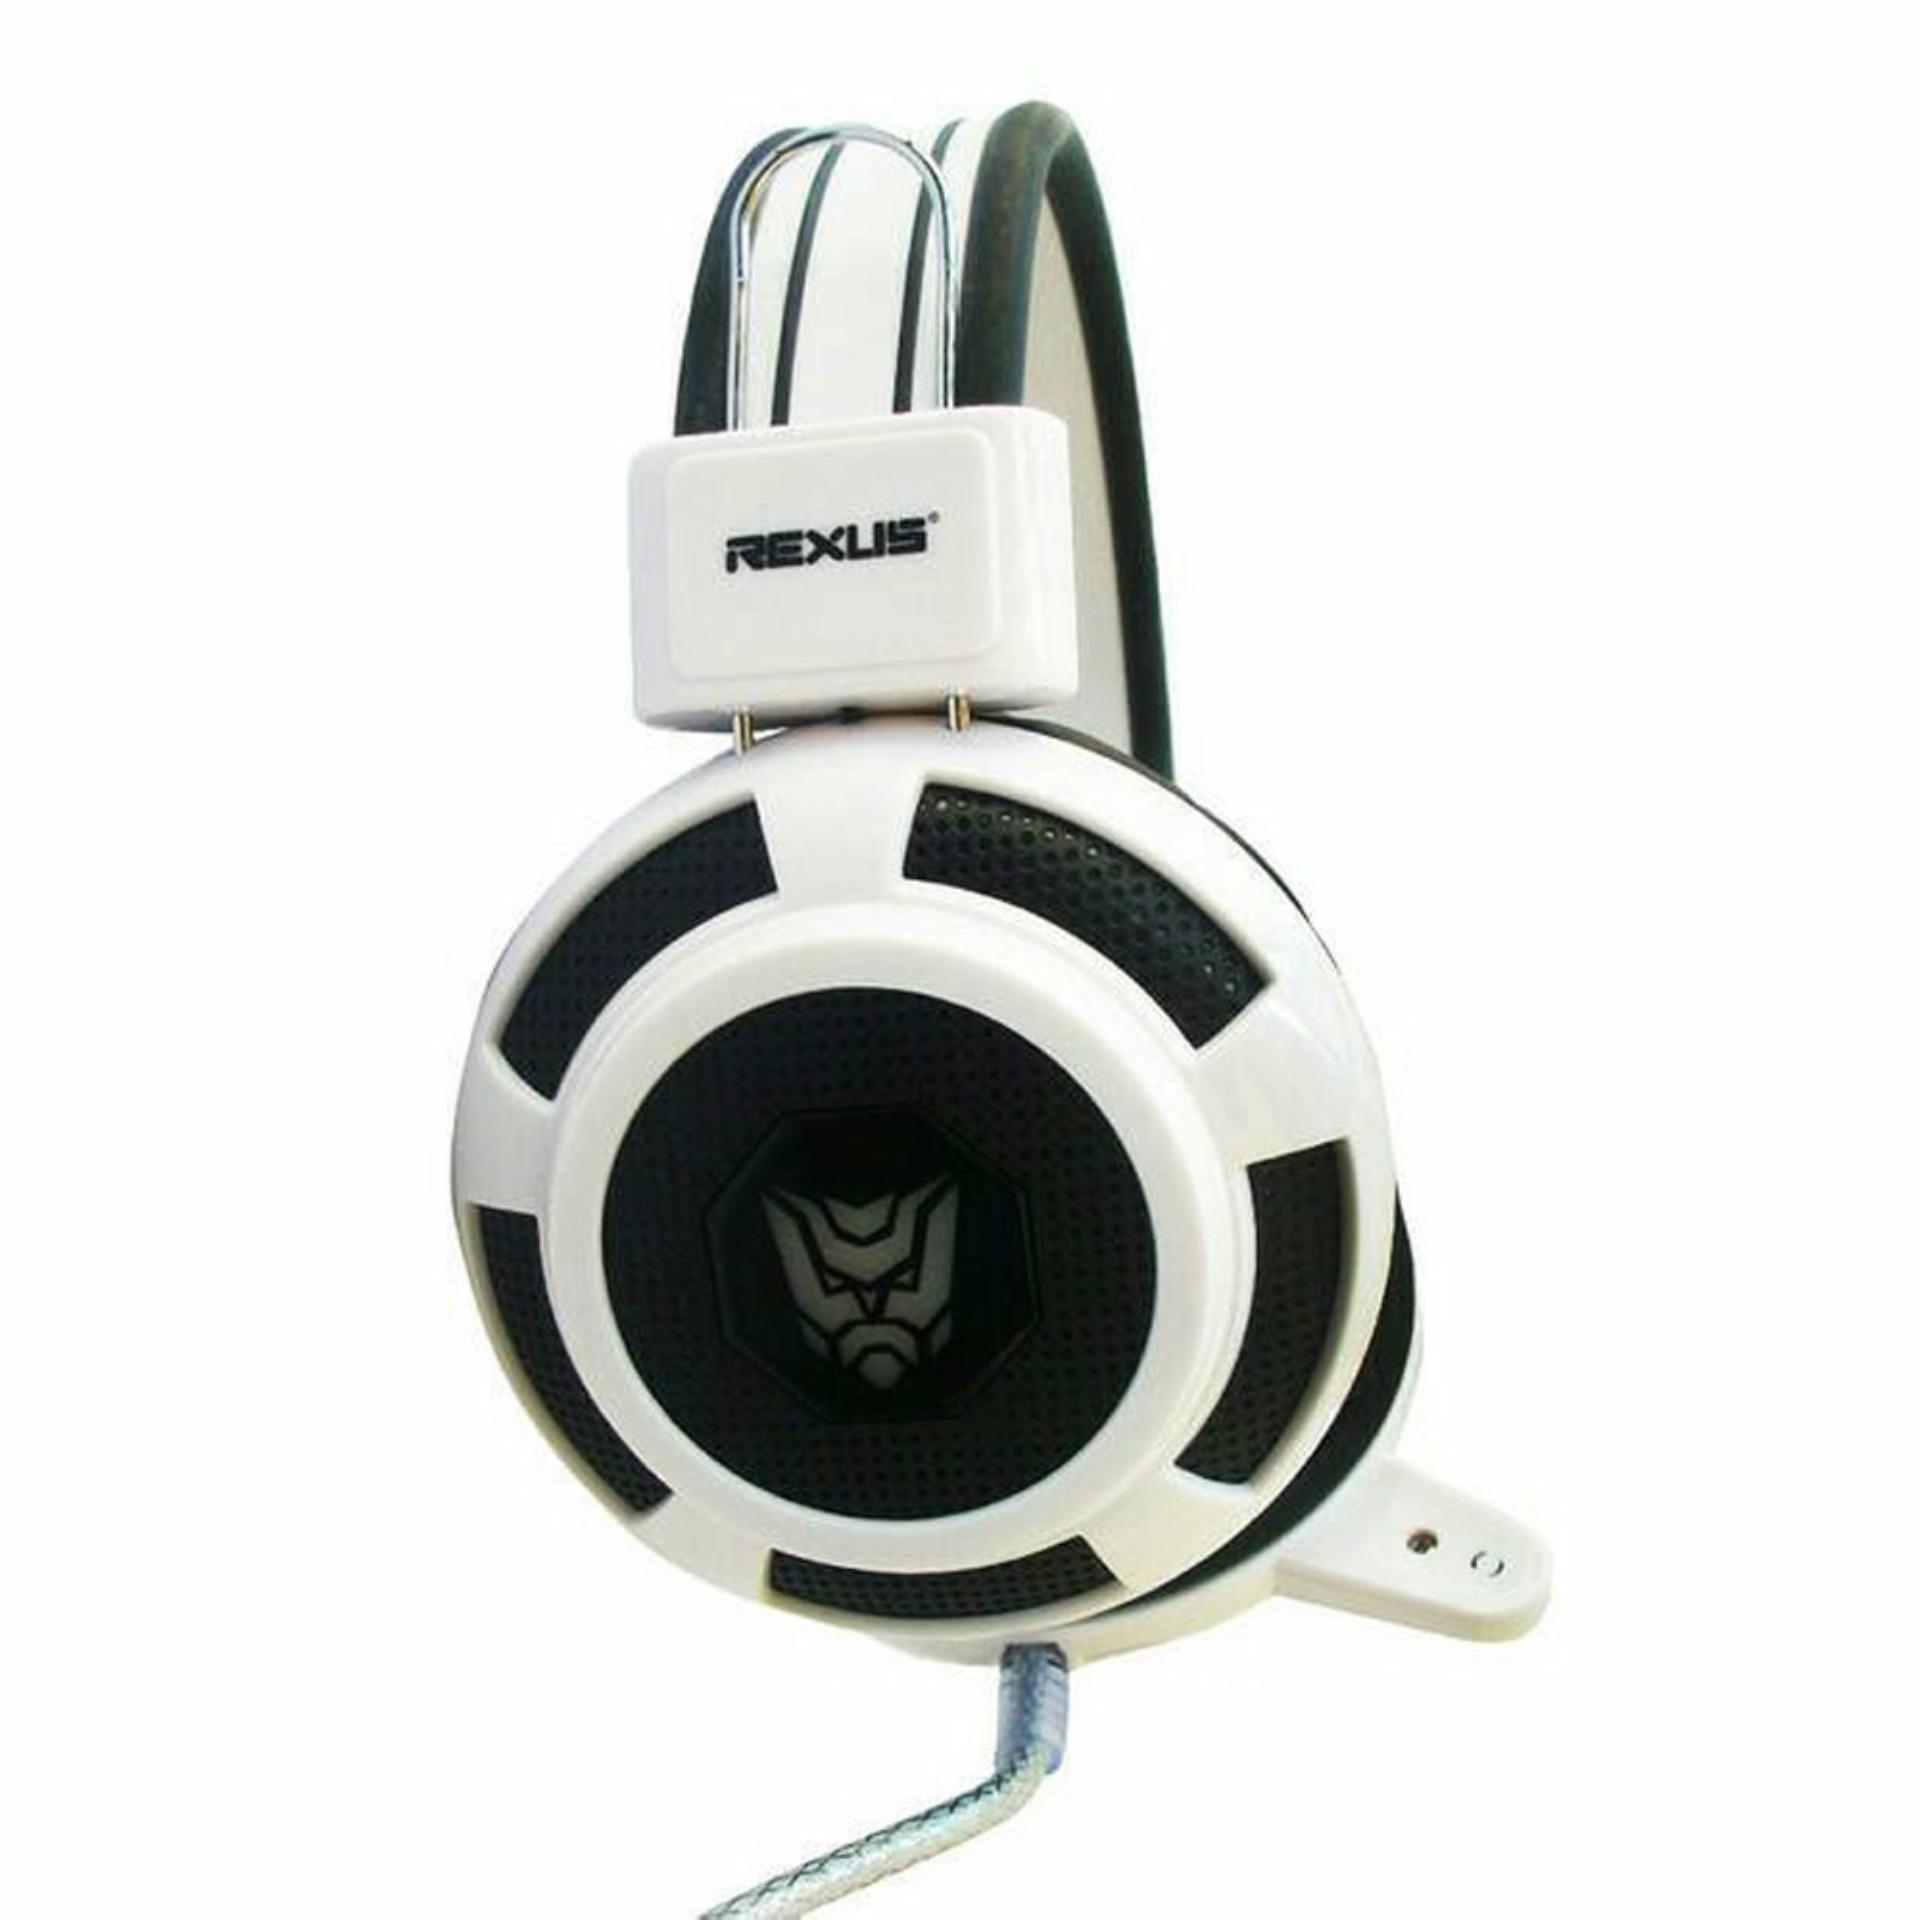 Spesifikasi Rexus Headset Gaming F15 F 15 F 15 Headphone Head Set Ear Phone Yang Bagus